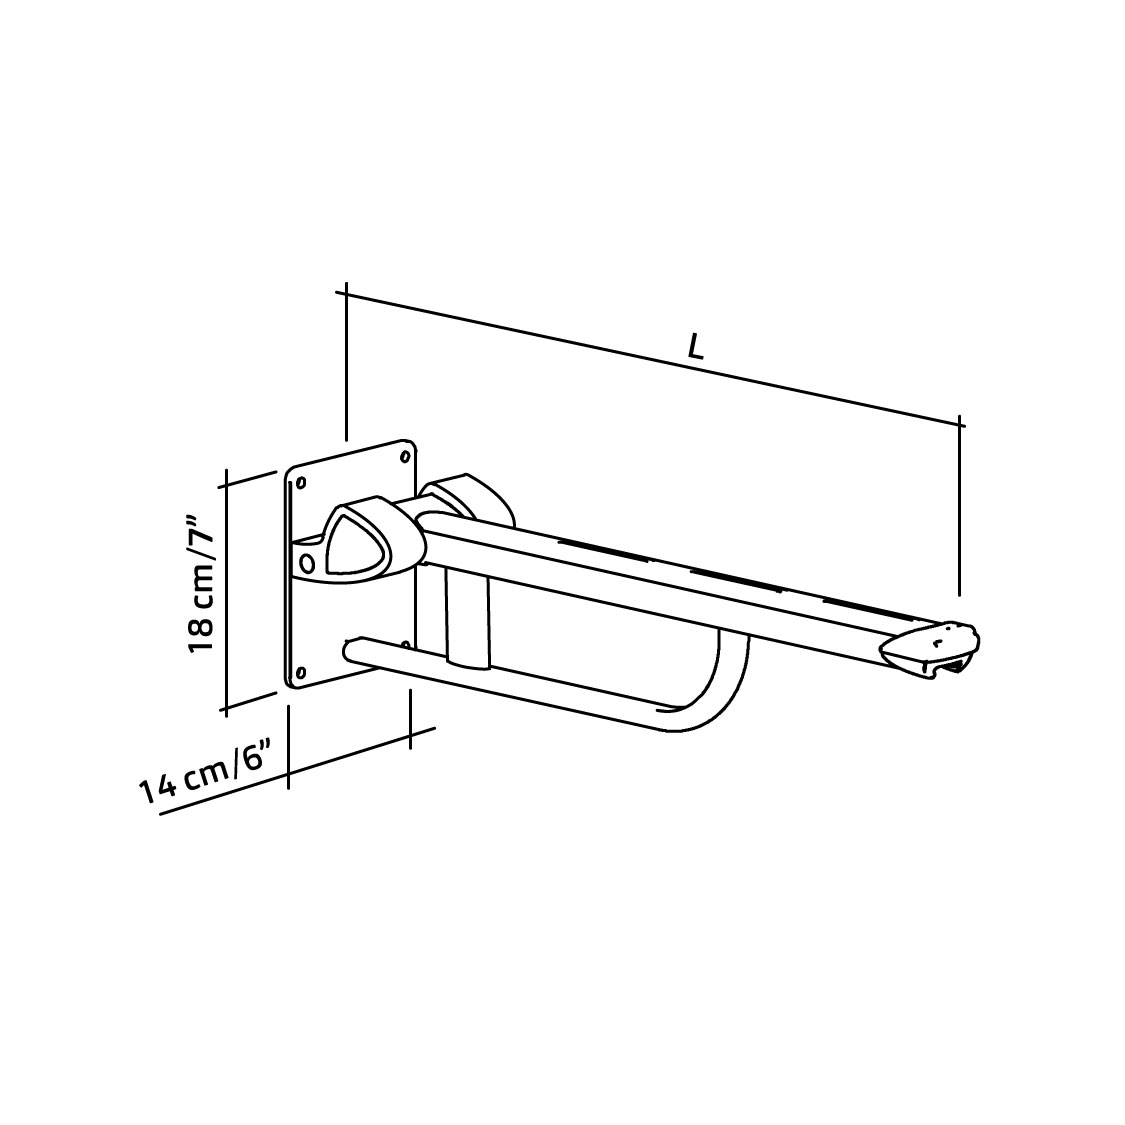 22-101-xx-wall-mounted-lift-up-arm-support-diagram